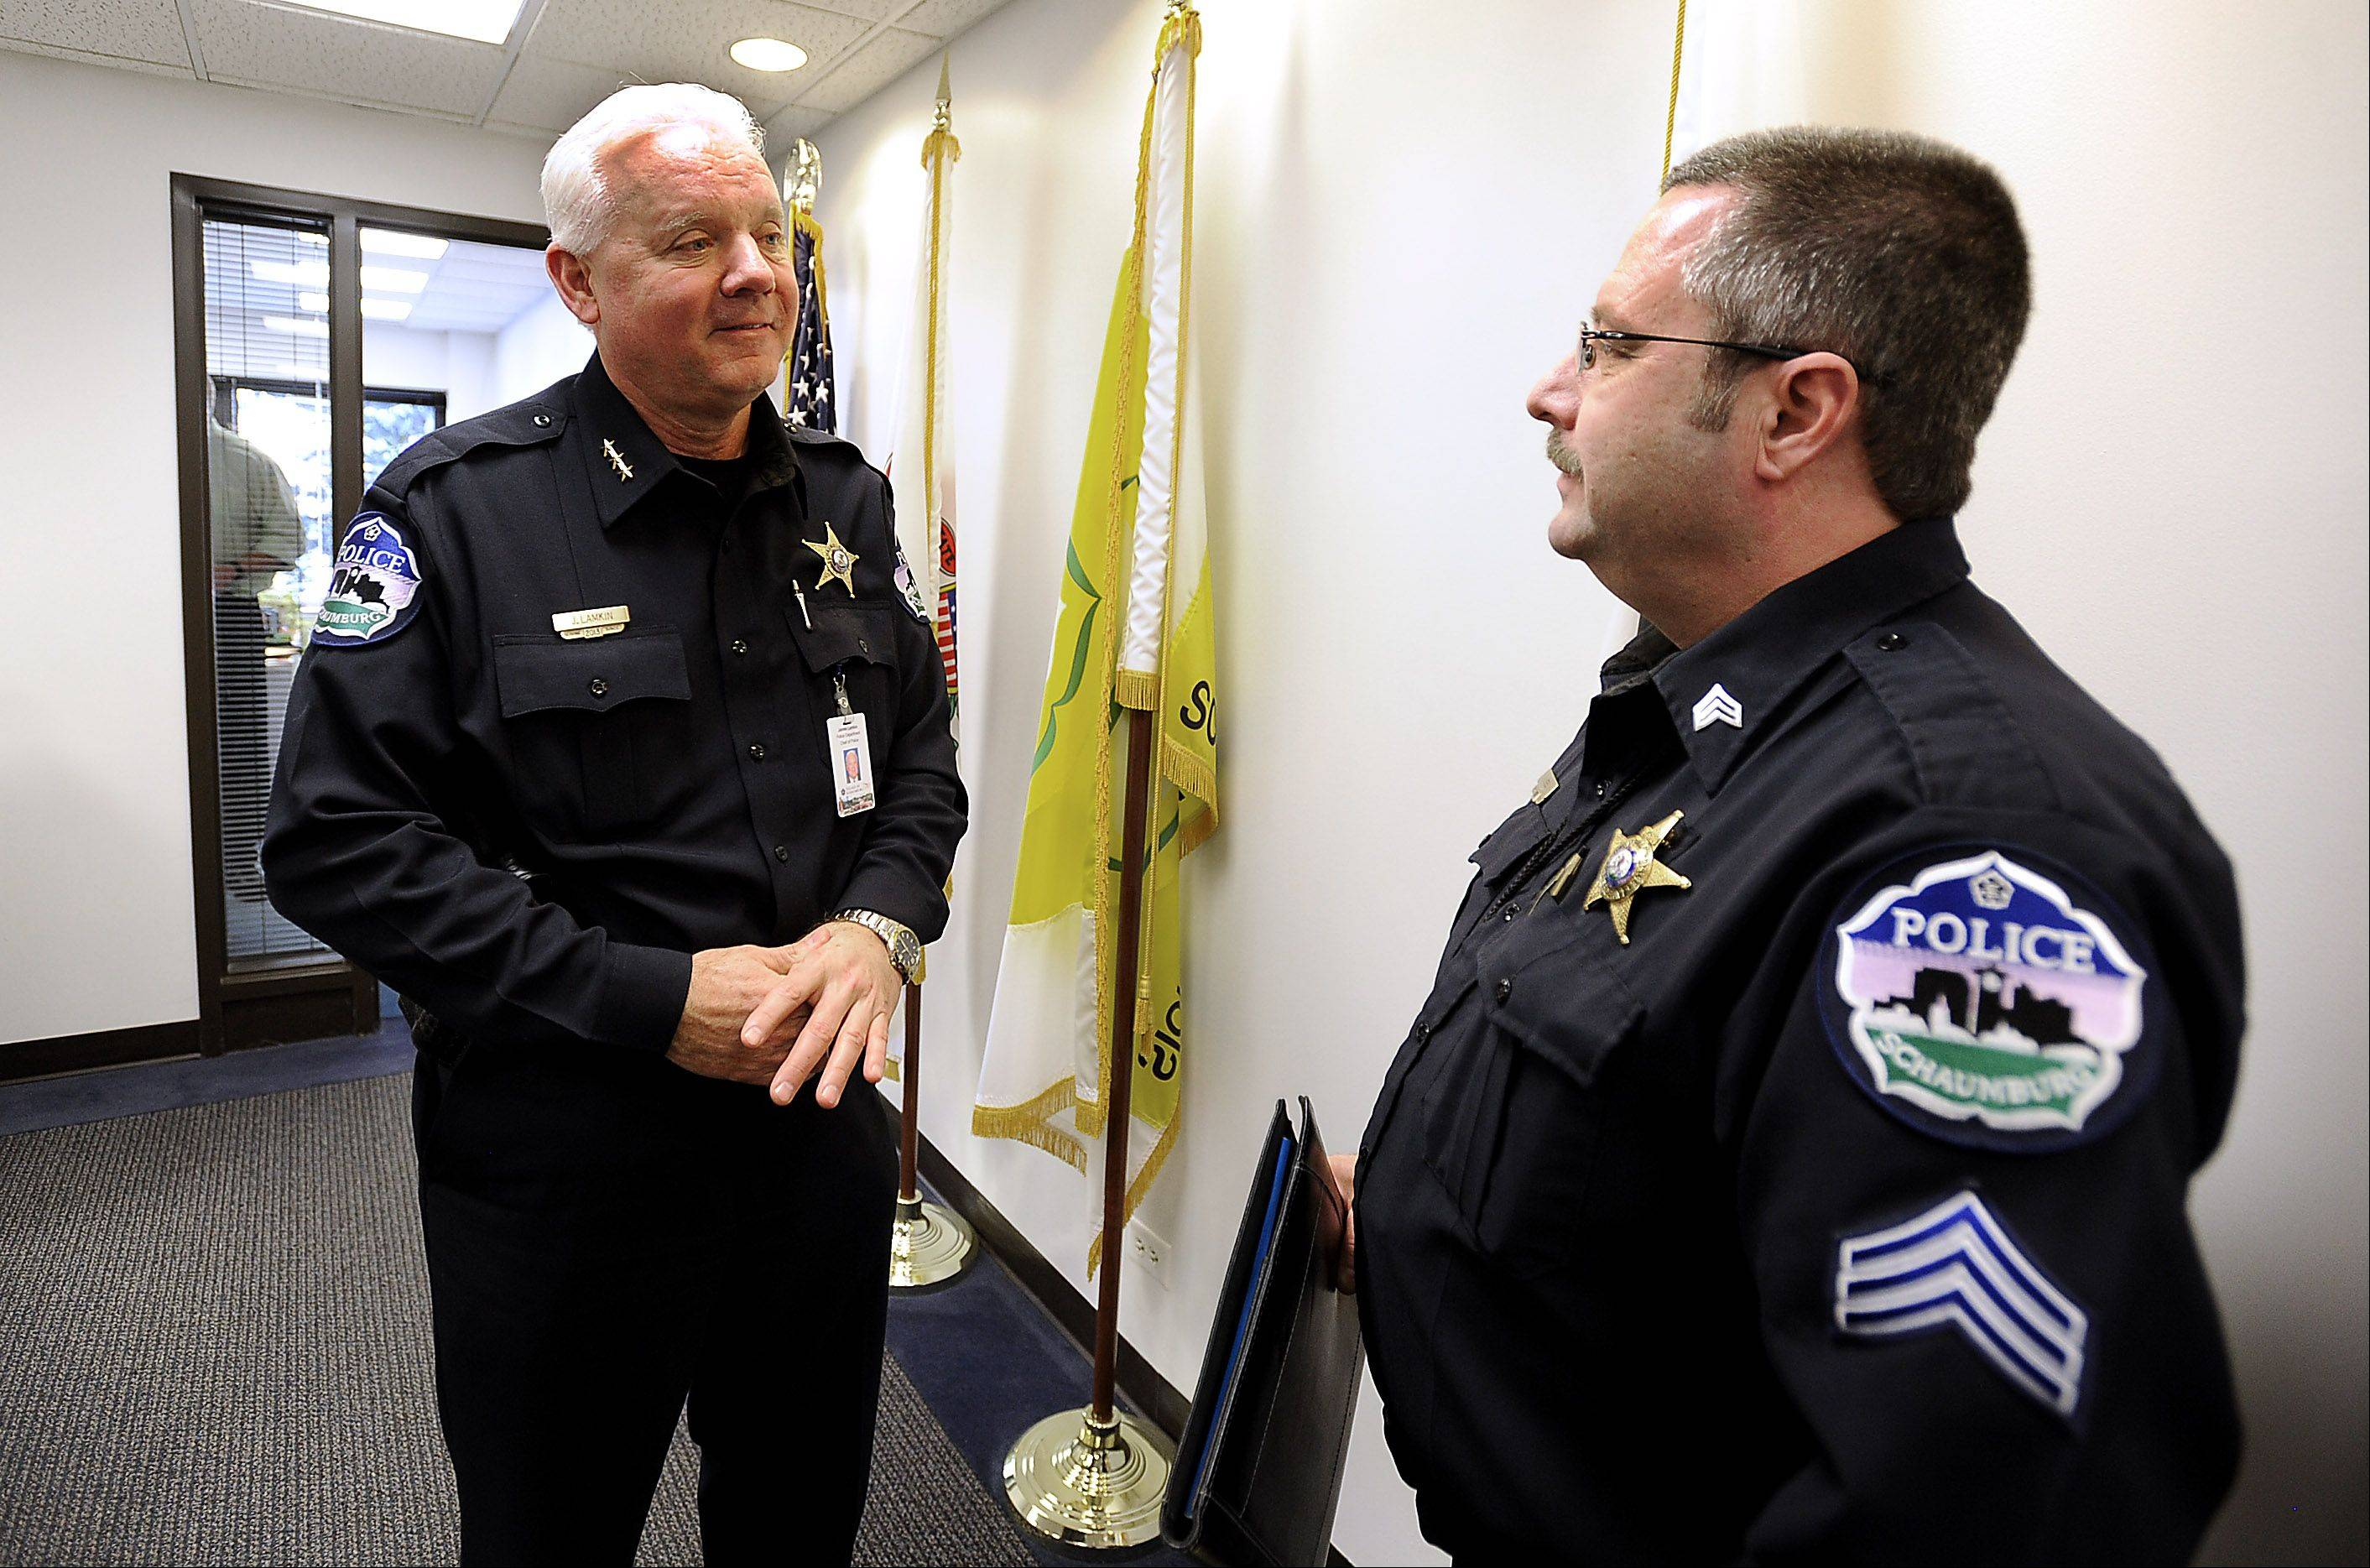 New Schaumburg Police Chief James Lamkin, speaking with Sgt. John Nebl after a meeting, said one of his first goals is to create an atmosphere within the department that encourages his staff to make suggestions about how to better perform their duties.